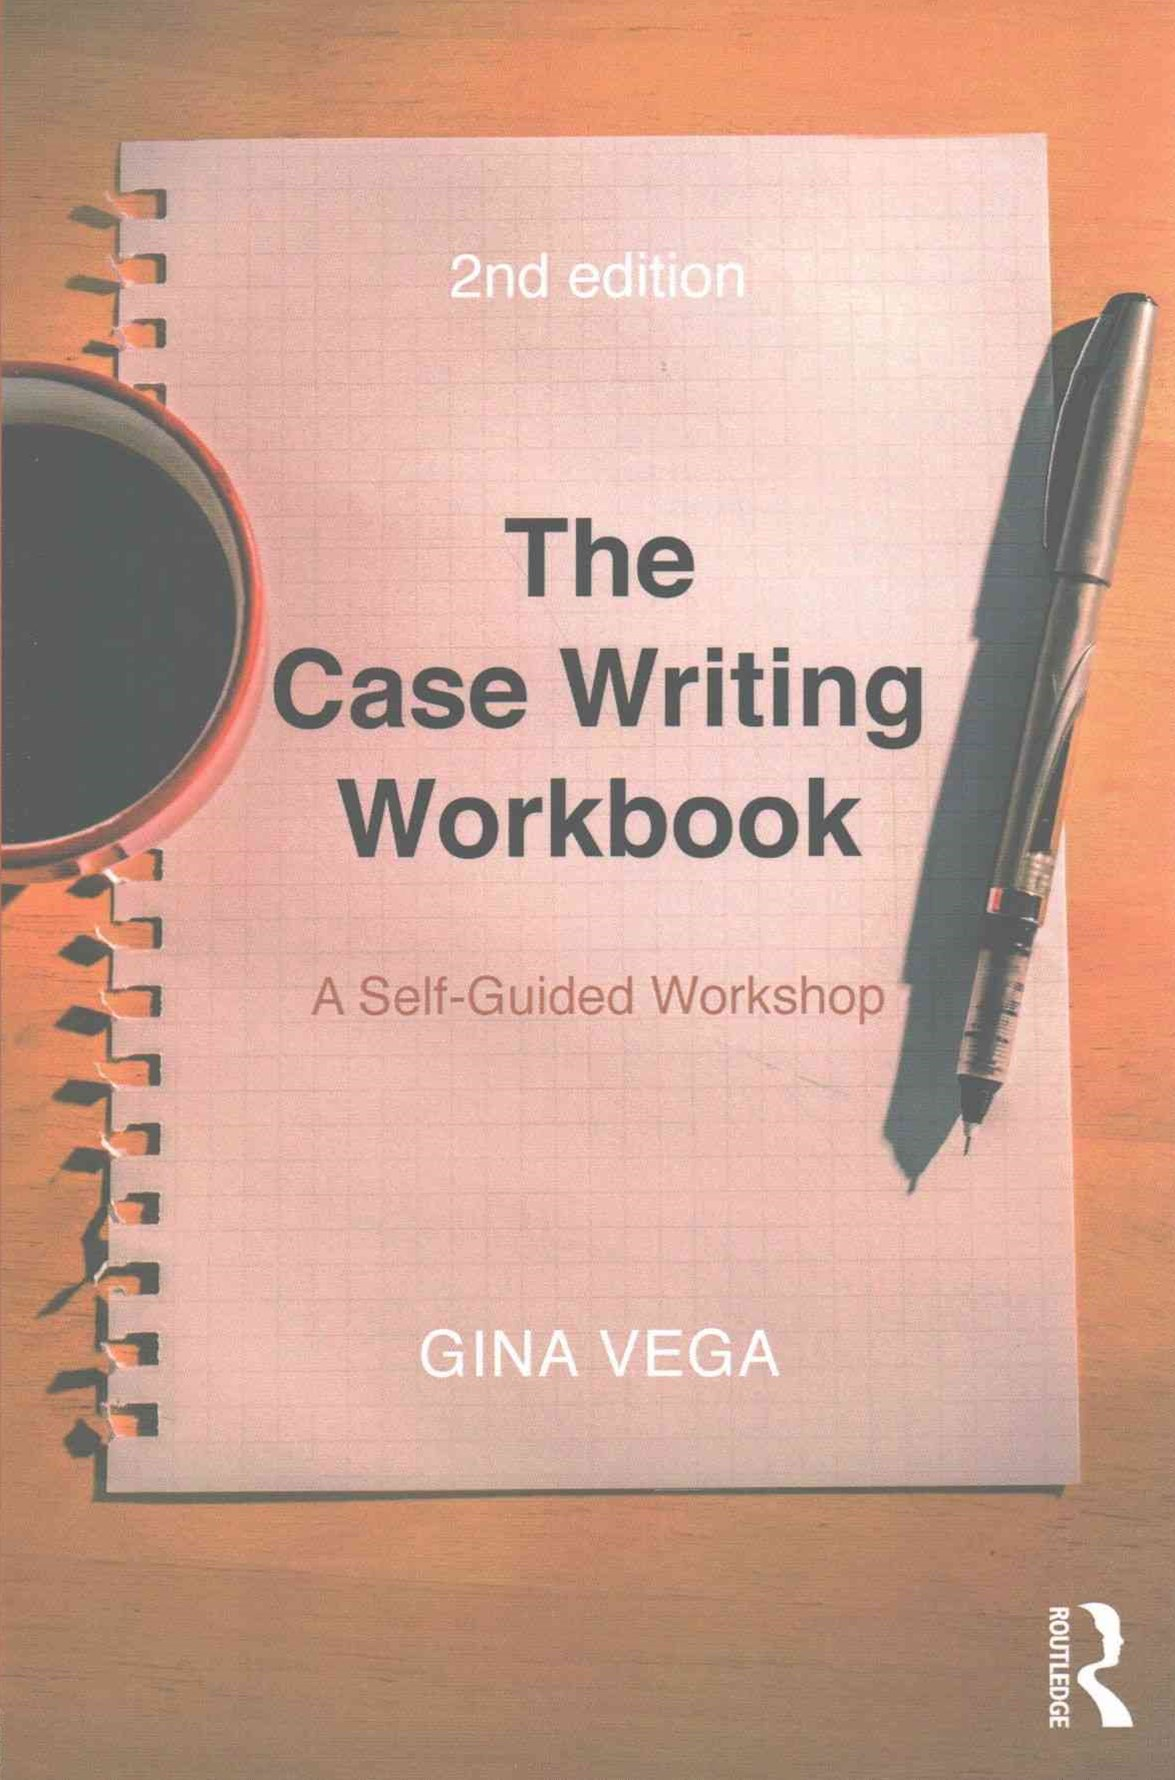 Case Writing Workbook